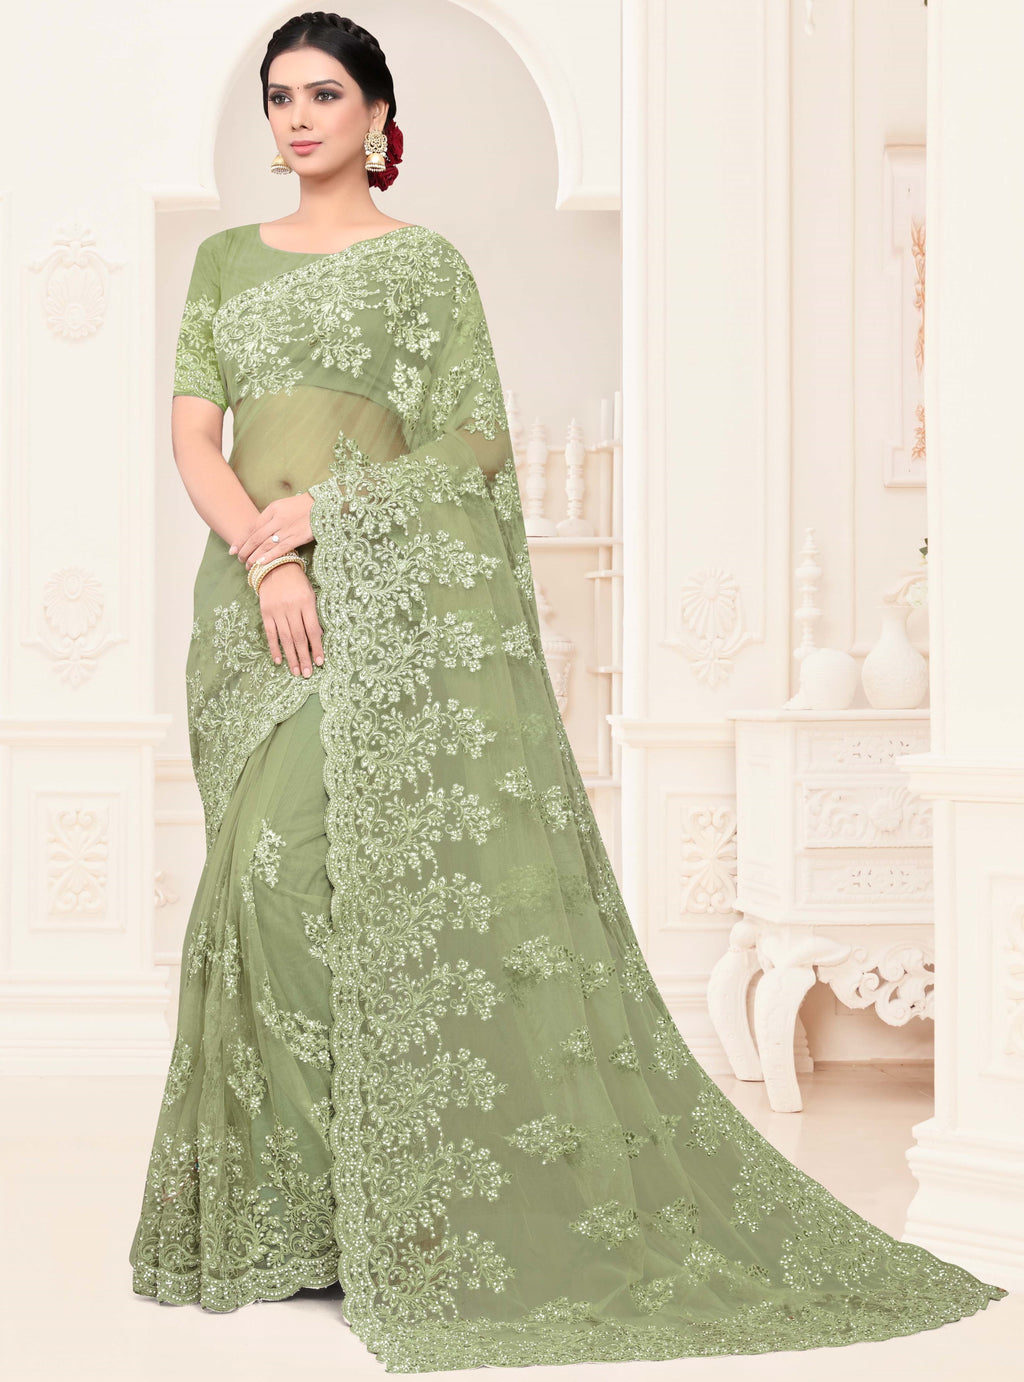 Green Color Net Trendy Designer Sarees NYF-4200 - YellowFashion.in